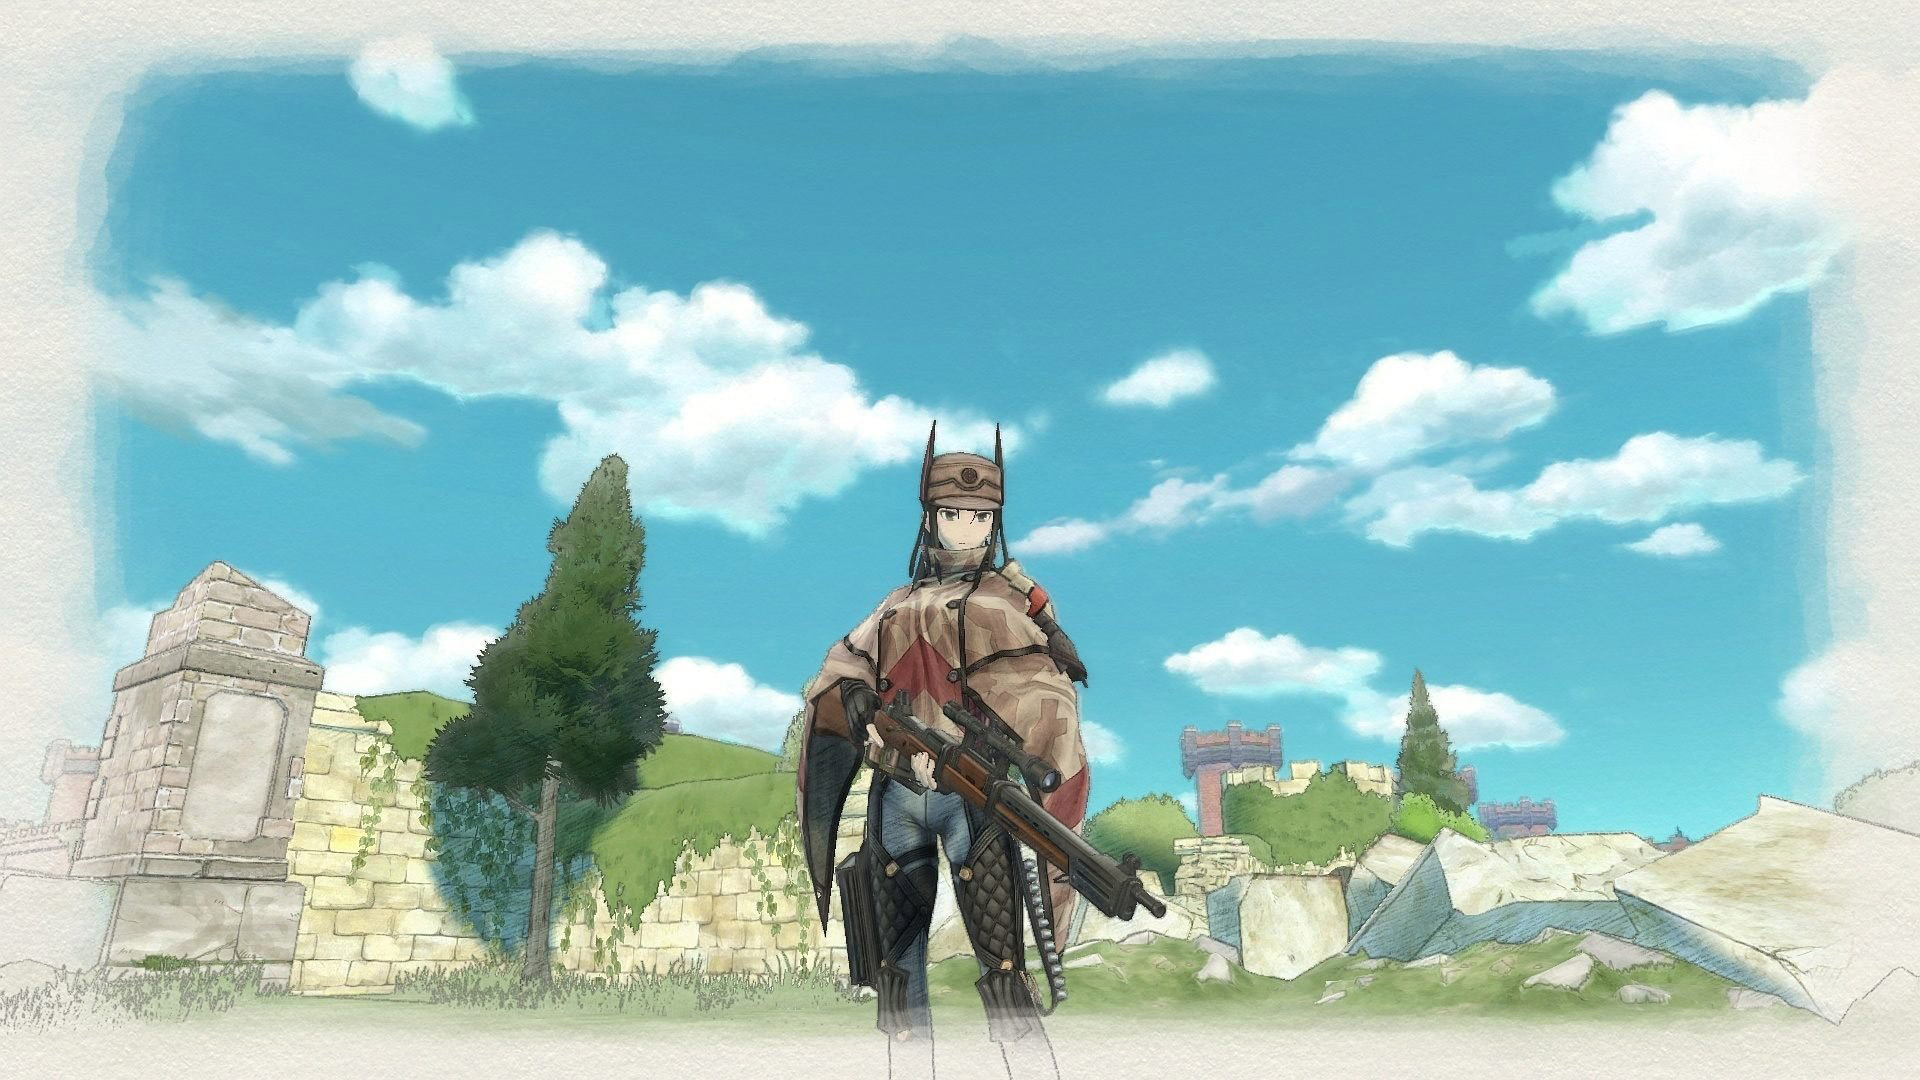 Valkyria Chronicles 4 Wallpaper in 1920x1080